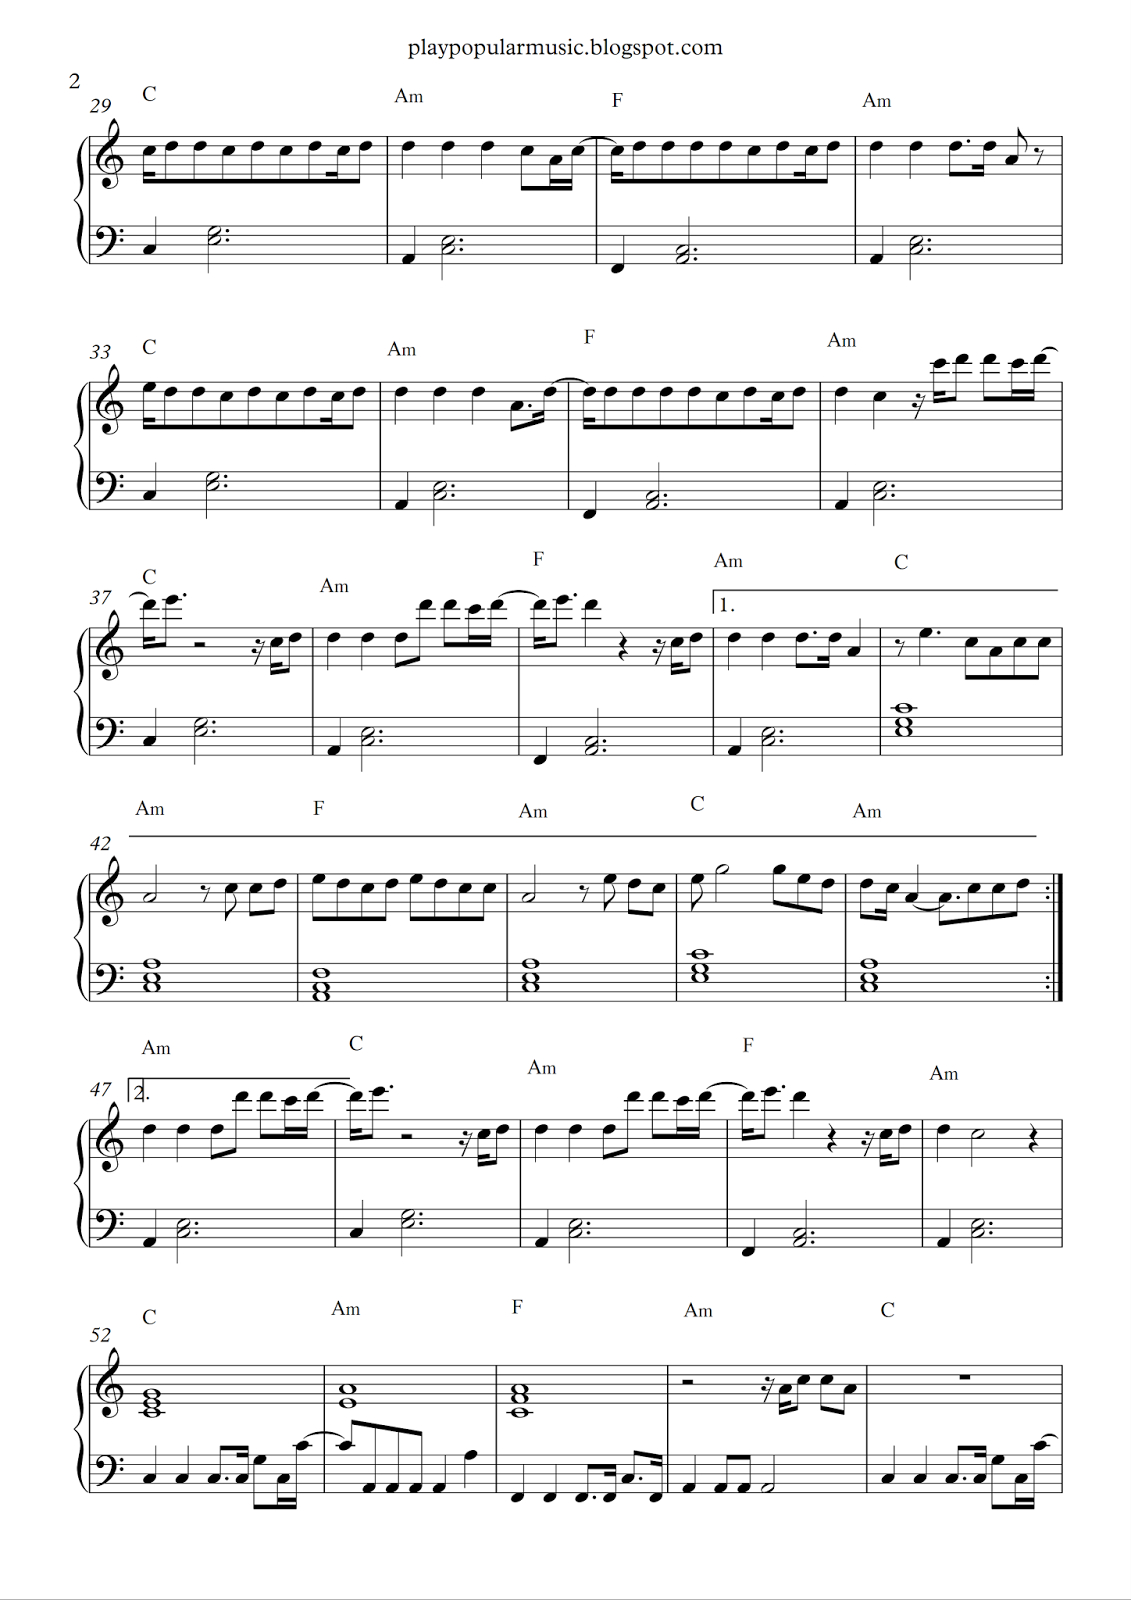 Free Piano Sheet Music: Can't Stop The Feeling! - Justin Timberlake - Free Printable Music Sheets Pdf